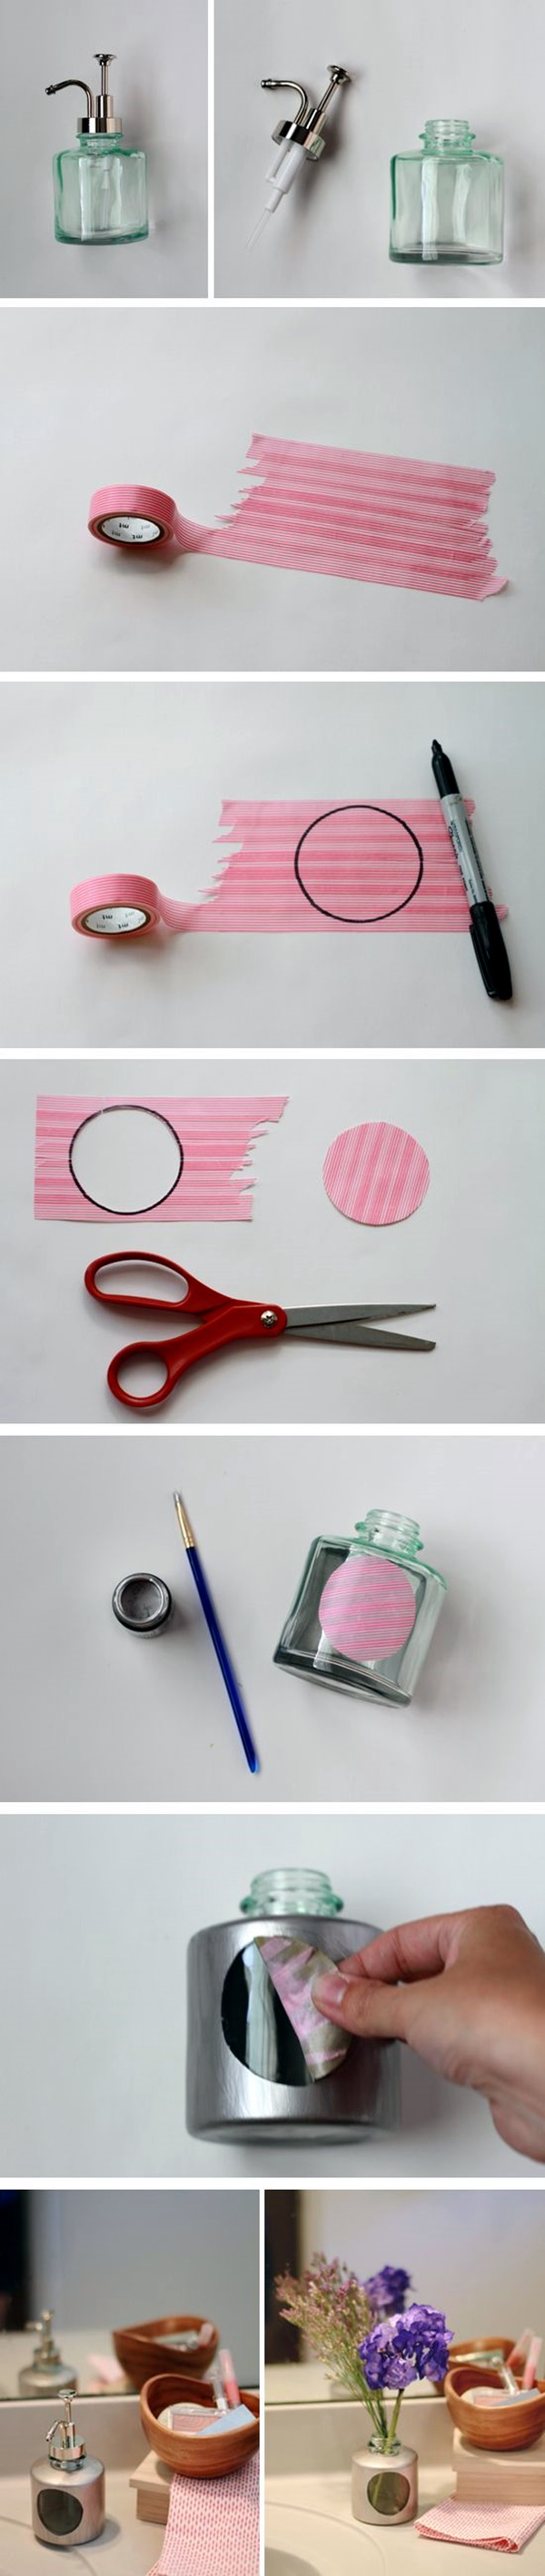 Quick and So Useful DIY's to Learn (39)